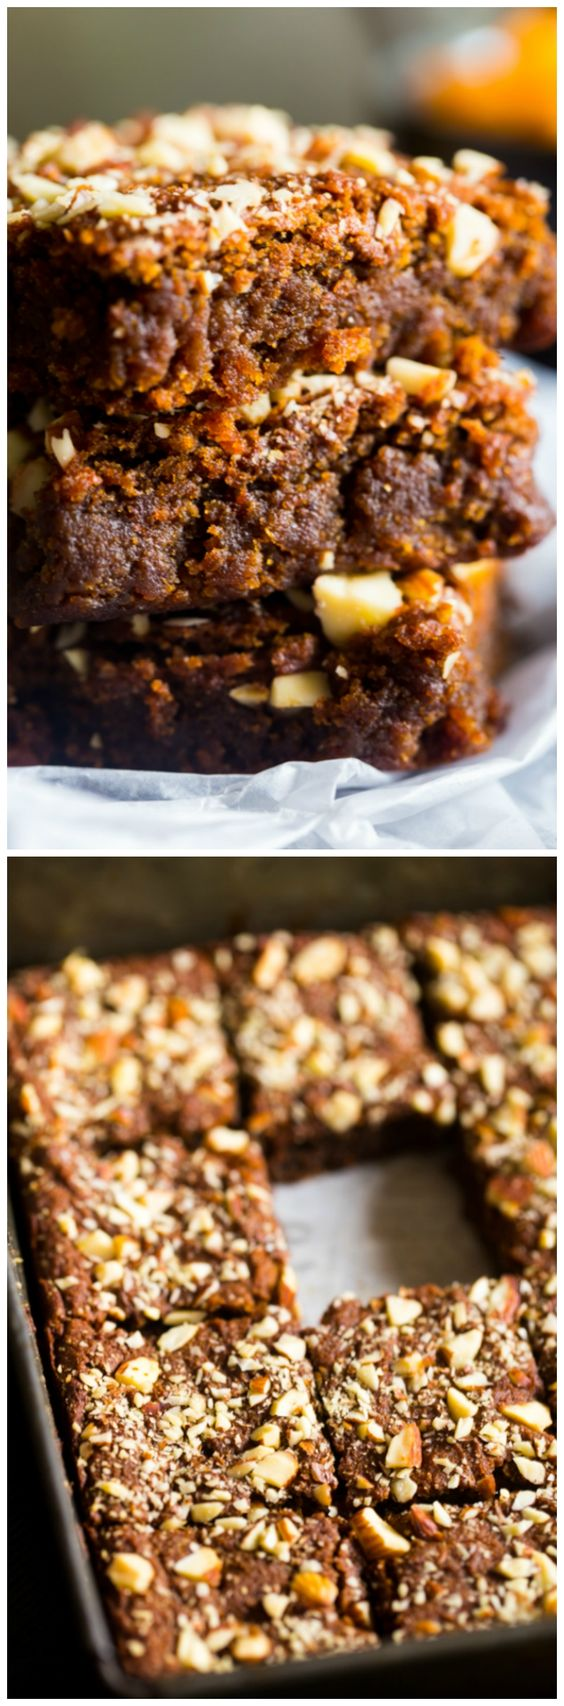 Vegan and Paleo Pumpkin Almond Butter Blondies - One Bowl and only 100 CALORIES of gluten/grain/sugar/oil/dairy free deliciousness. HOW CAN YOU RESIST?!